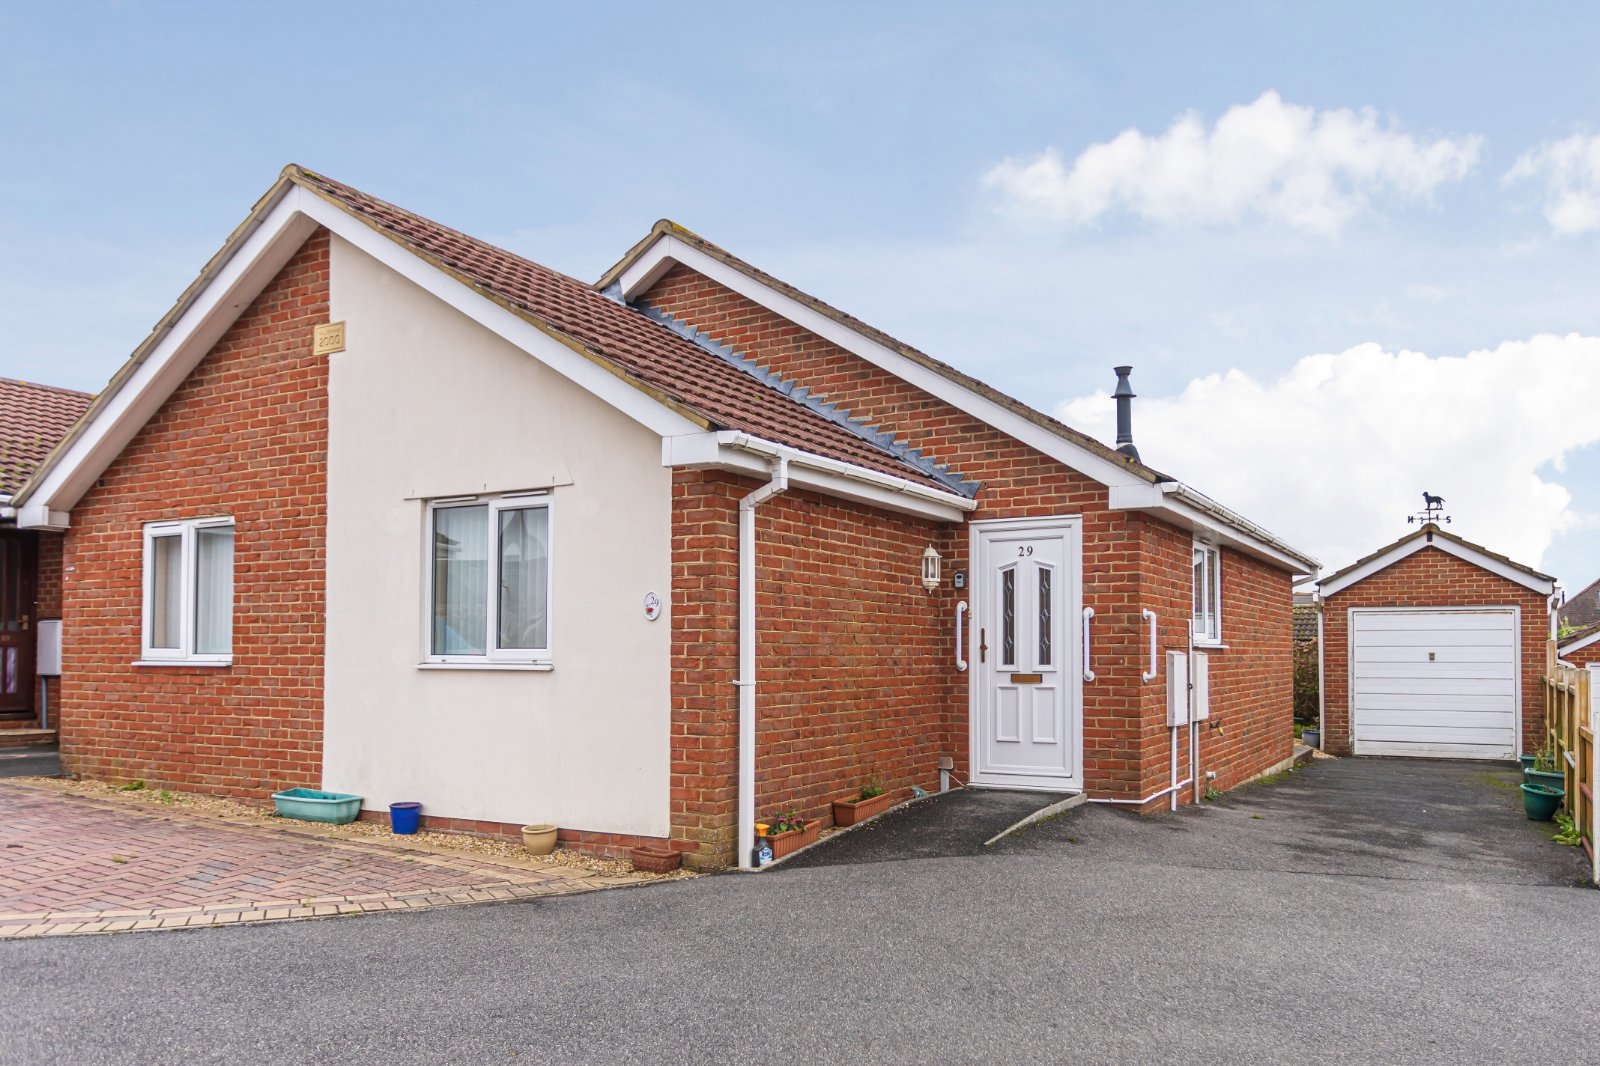 3 bed bungalow for sale in Brixey Close, Poole, BH12